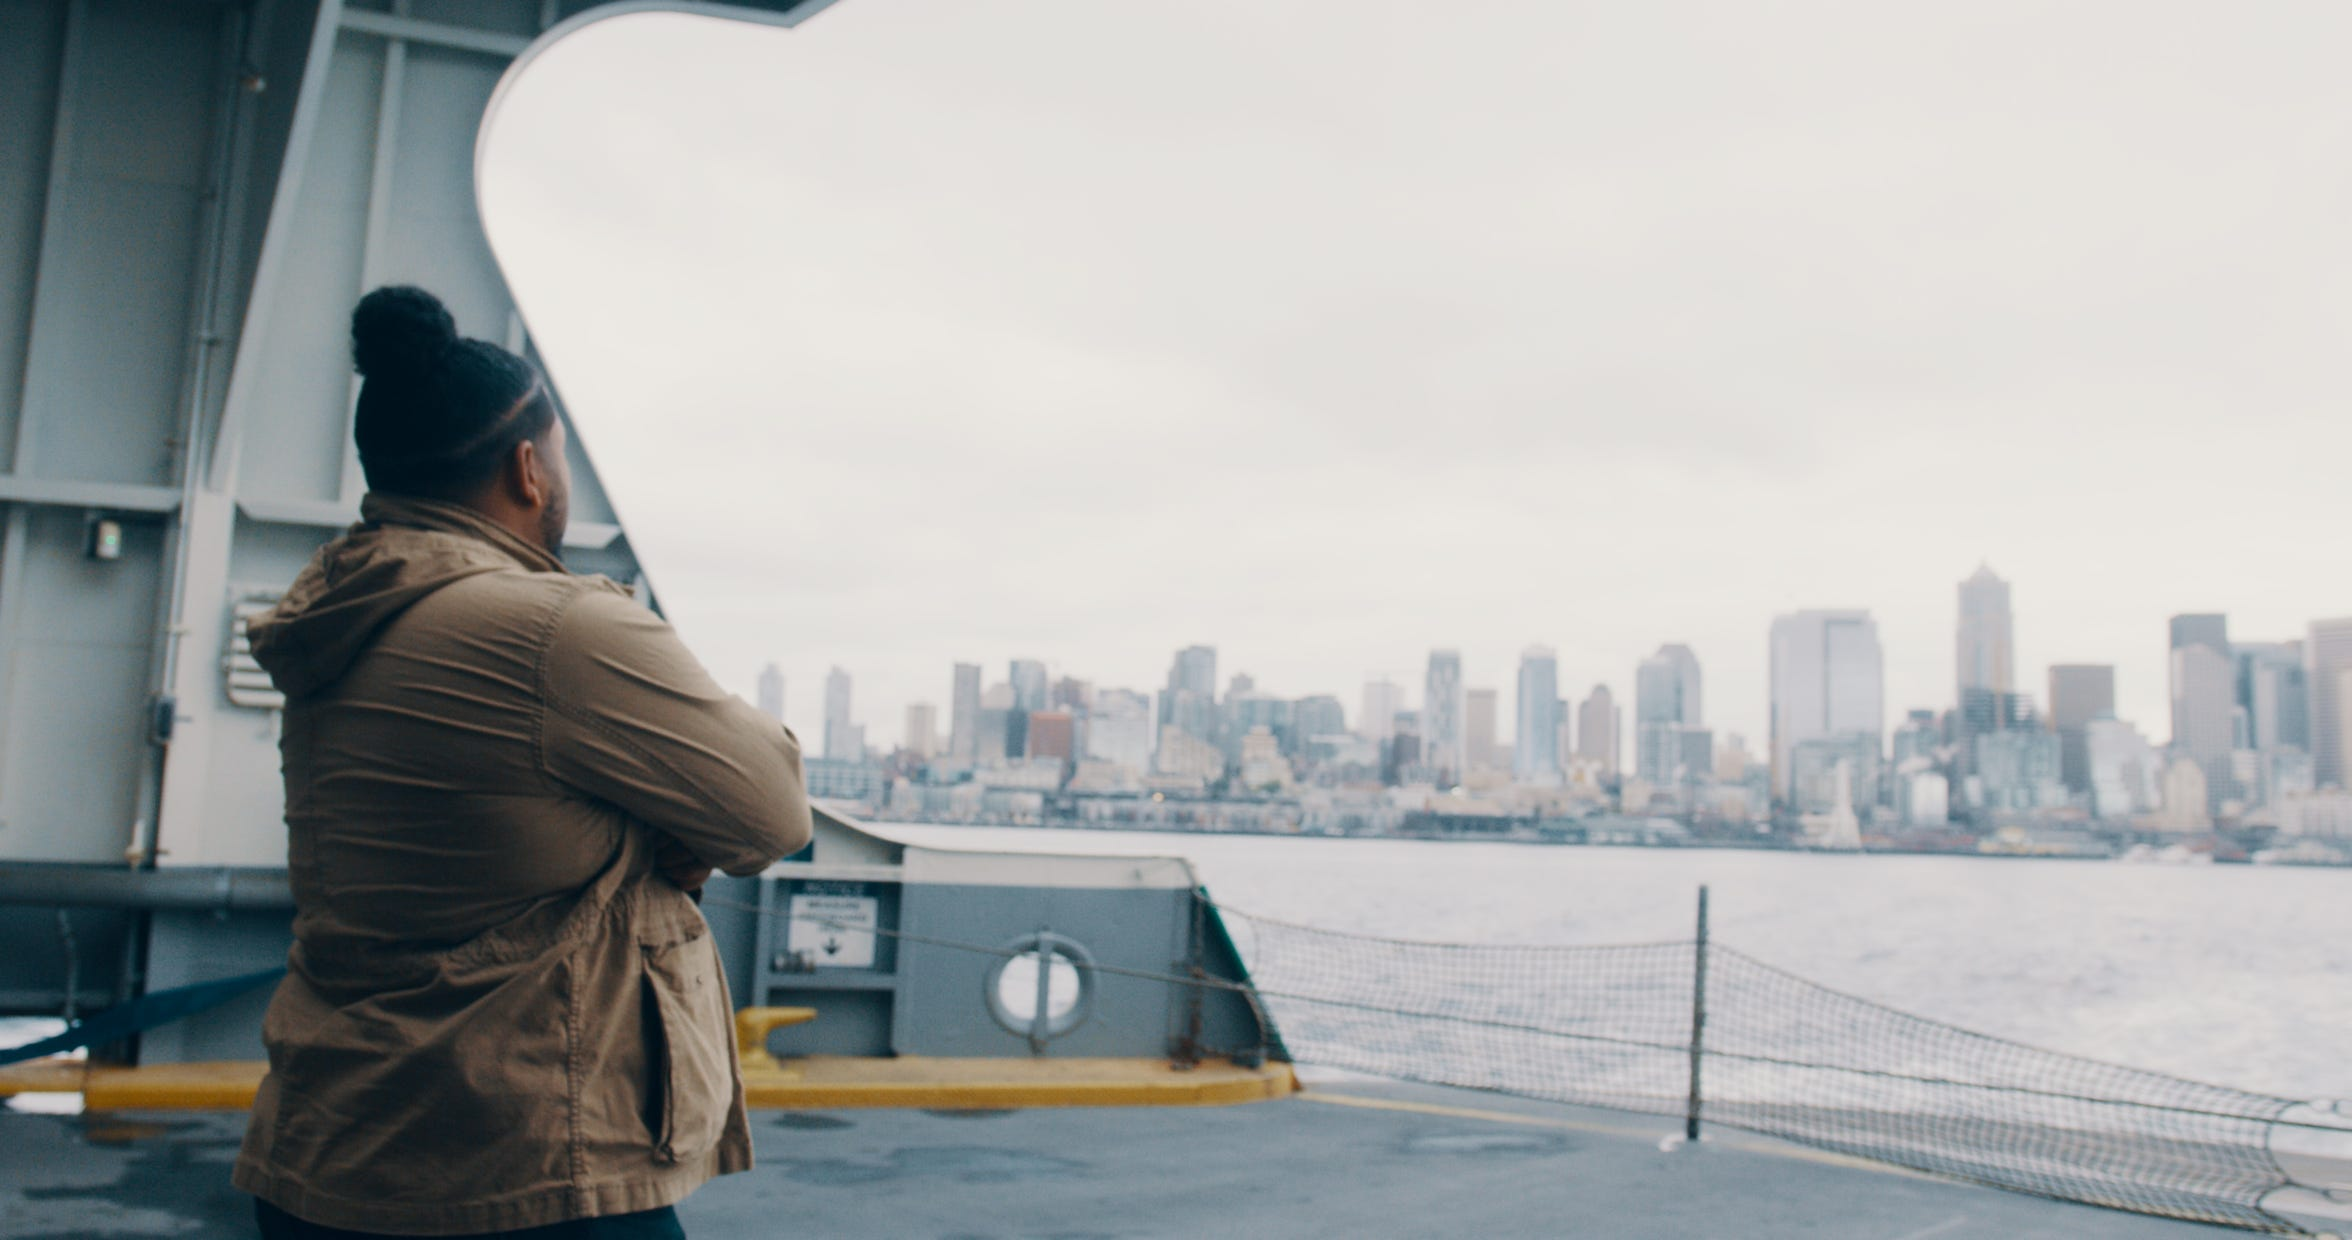 Locals and tourists alike frequent the ferry to Bainbridge — both for the views and for the destination.